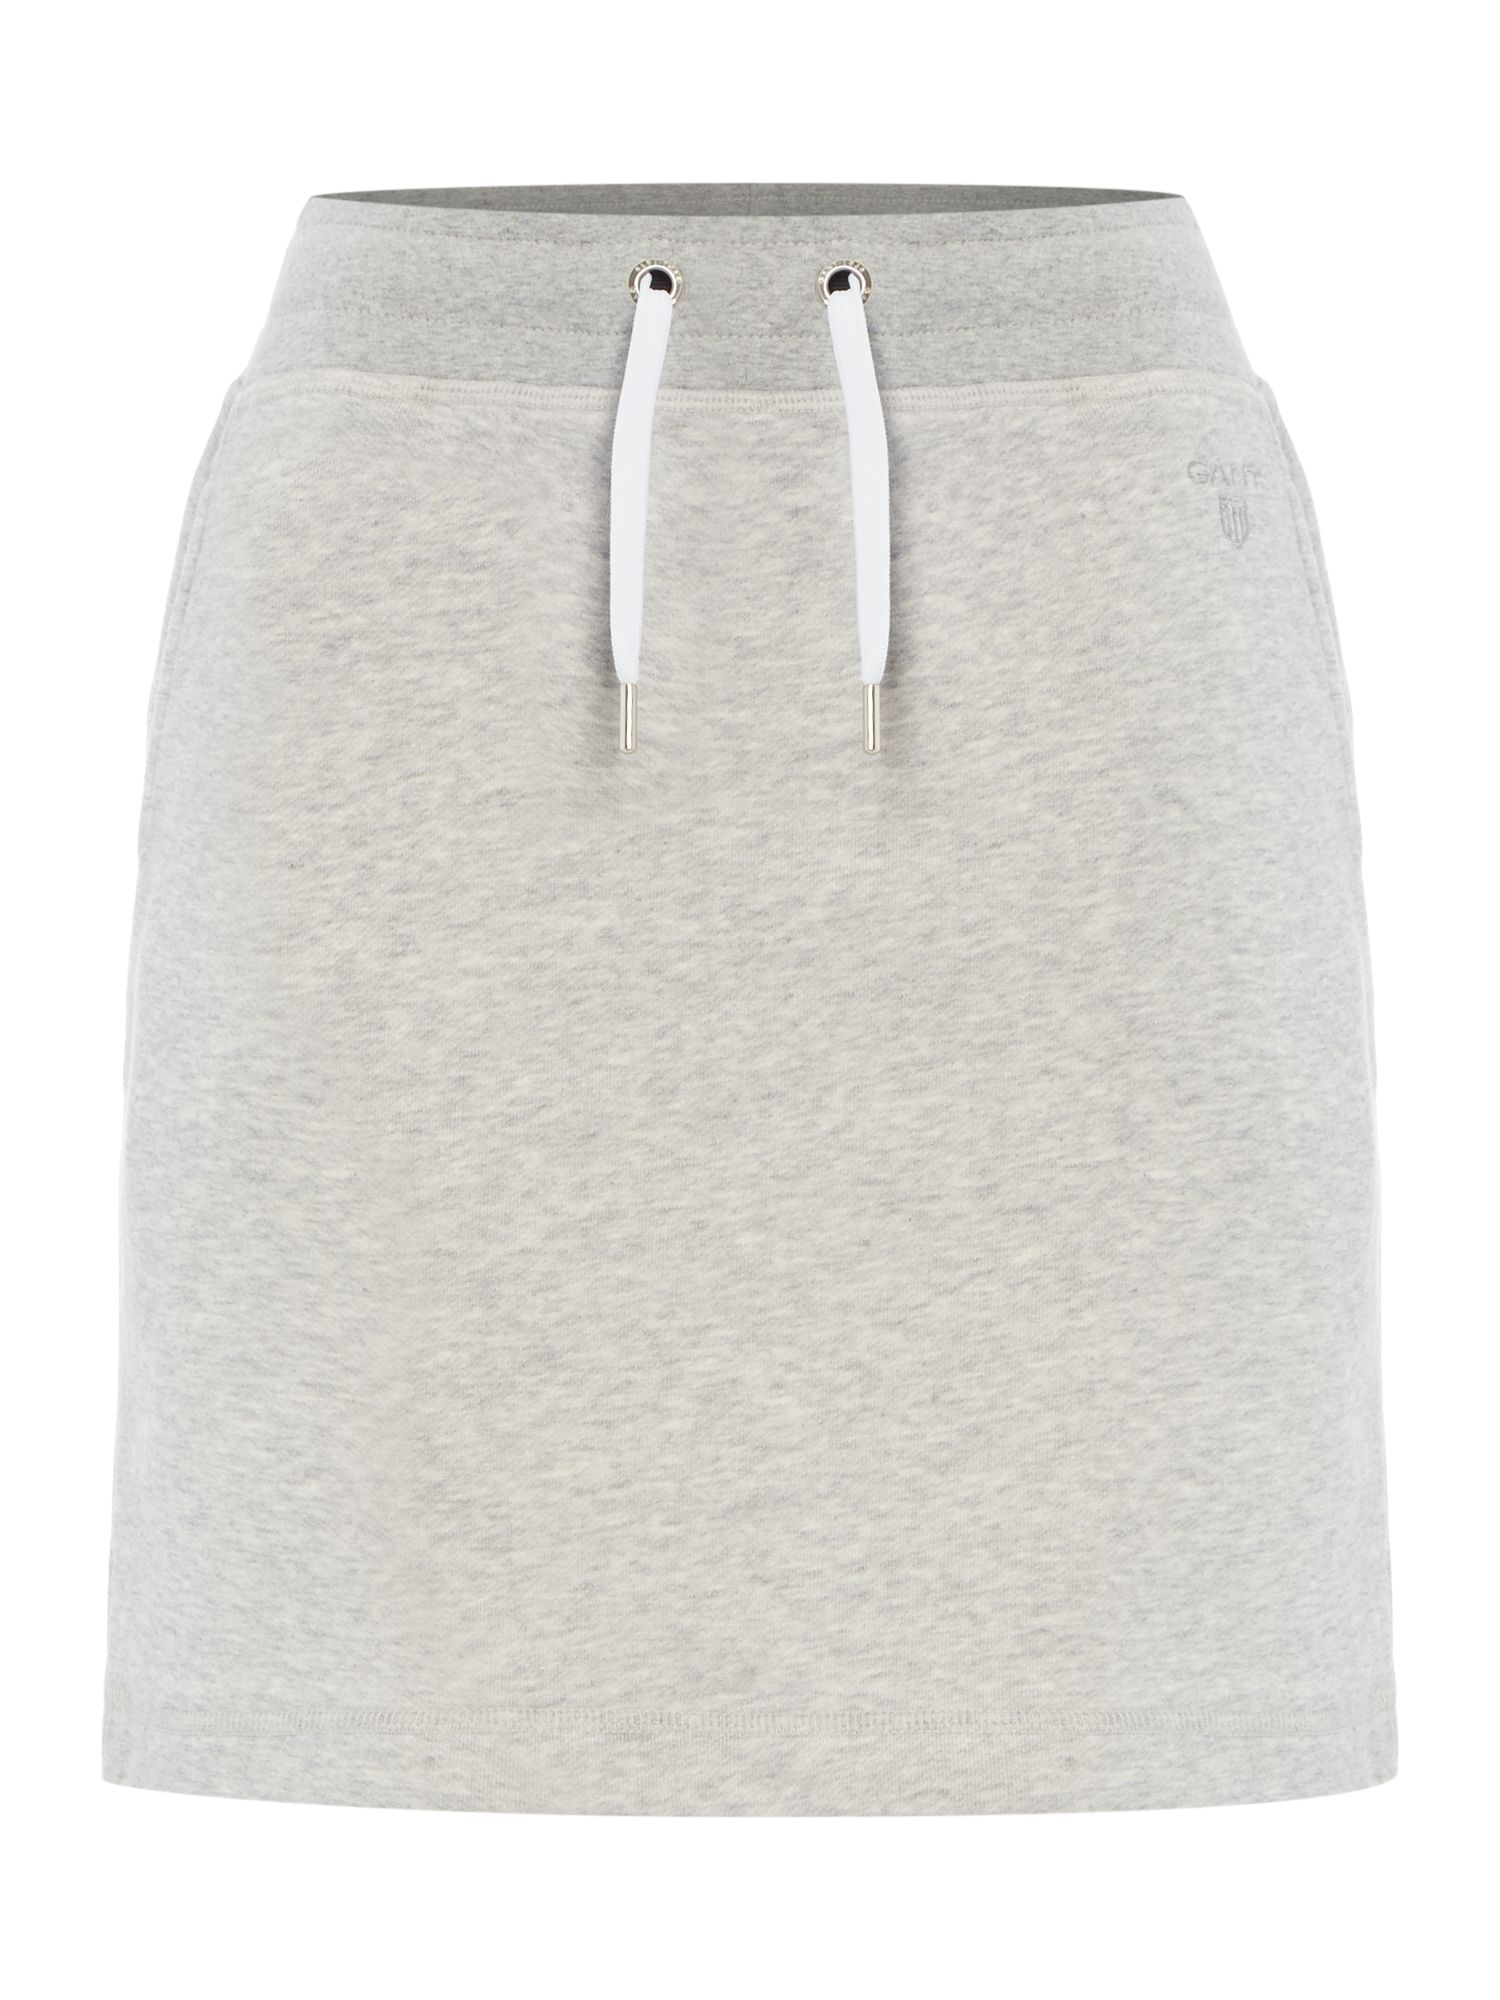 Gant Sweat skirt, Light Grey